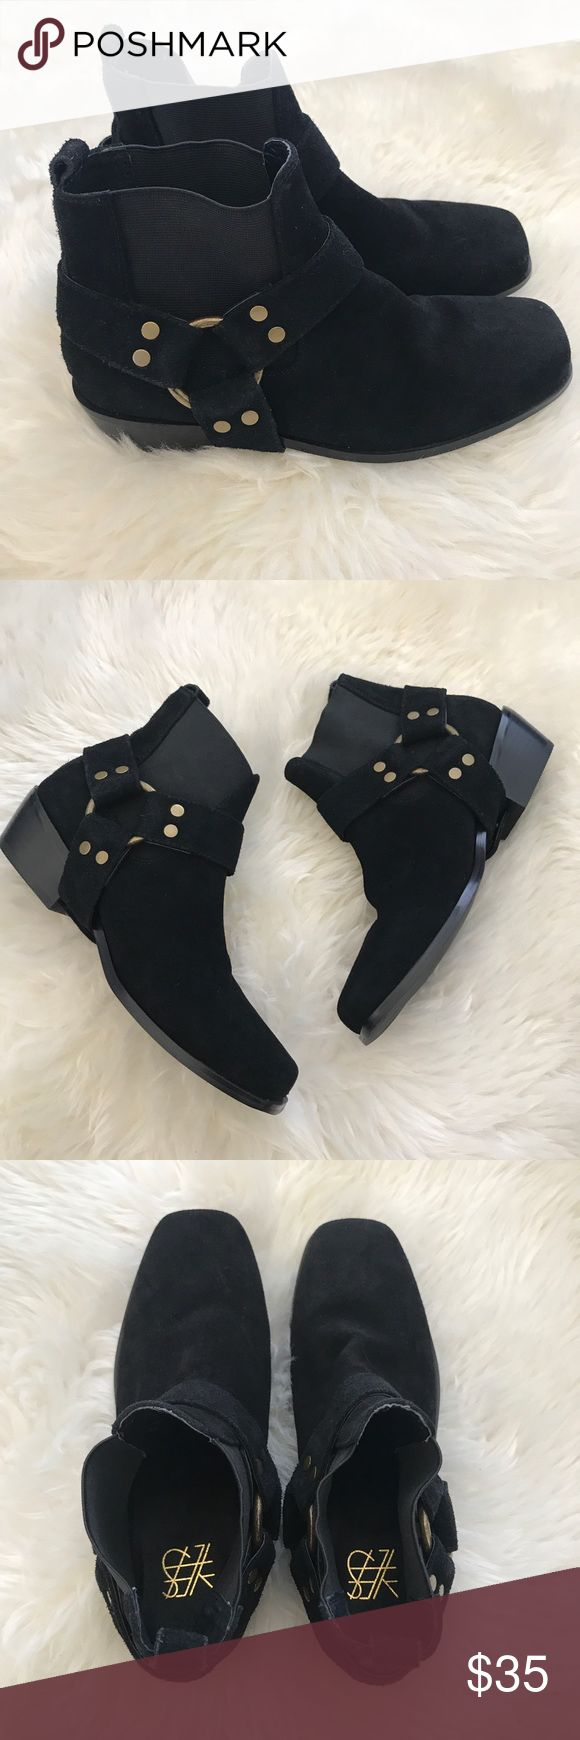 Yes brand Rider boots Size 7 in Women/ Black rider boots/ Brand new By Yes Shoes Ankle Boots & Booties